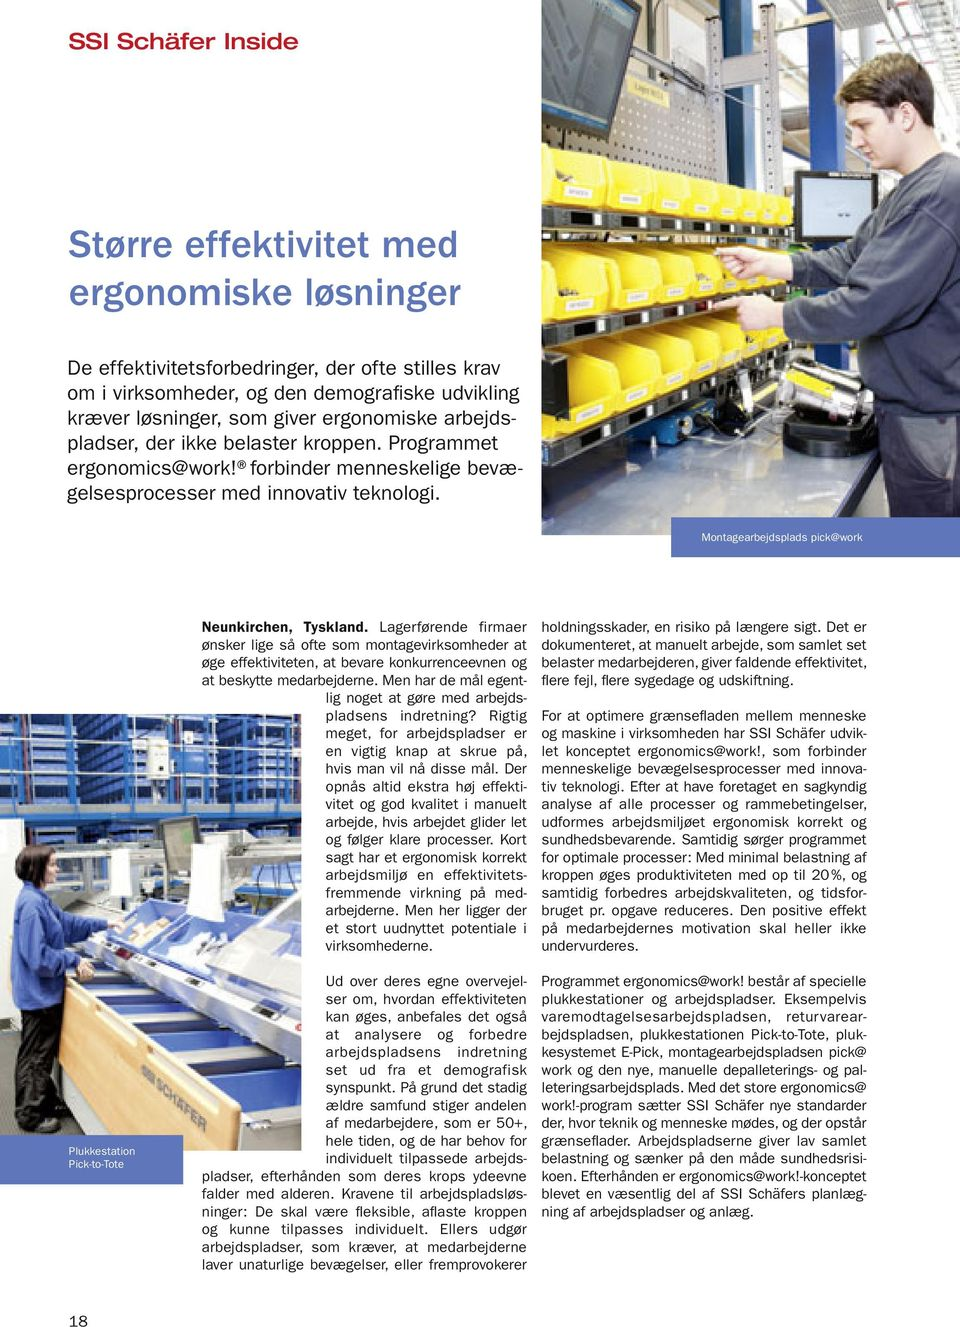 Montagearbejdsplads pick@work Plukkestation Pick-to-Tote Neunkirchen, Tyskland.